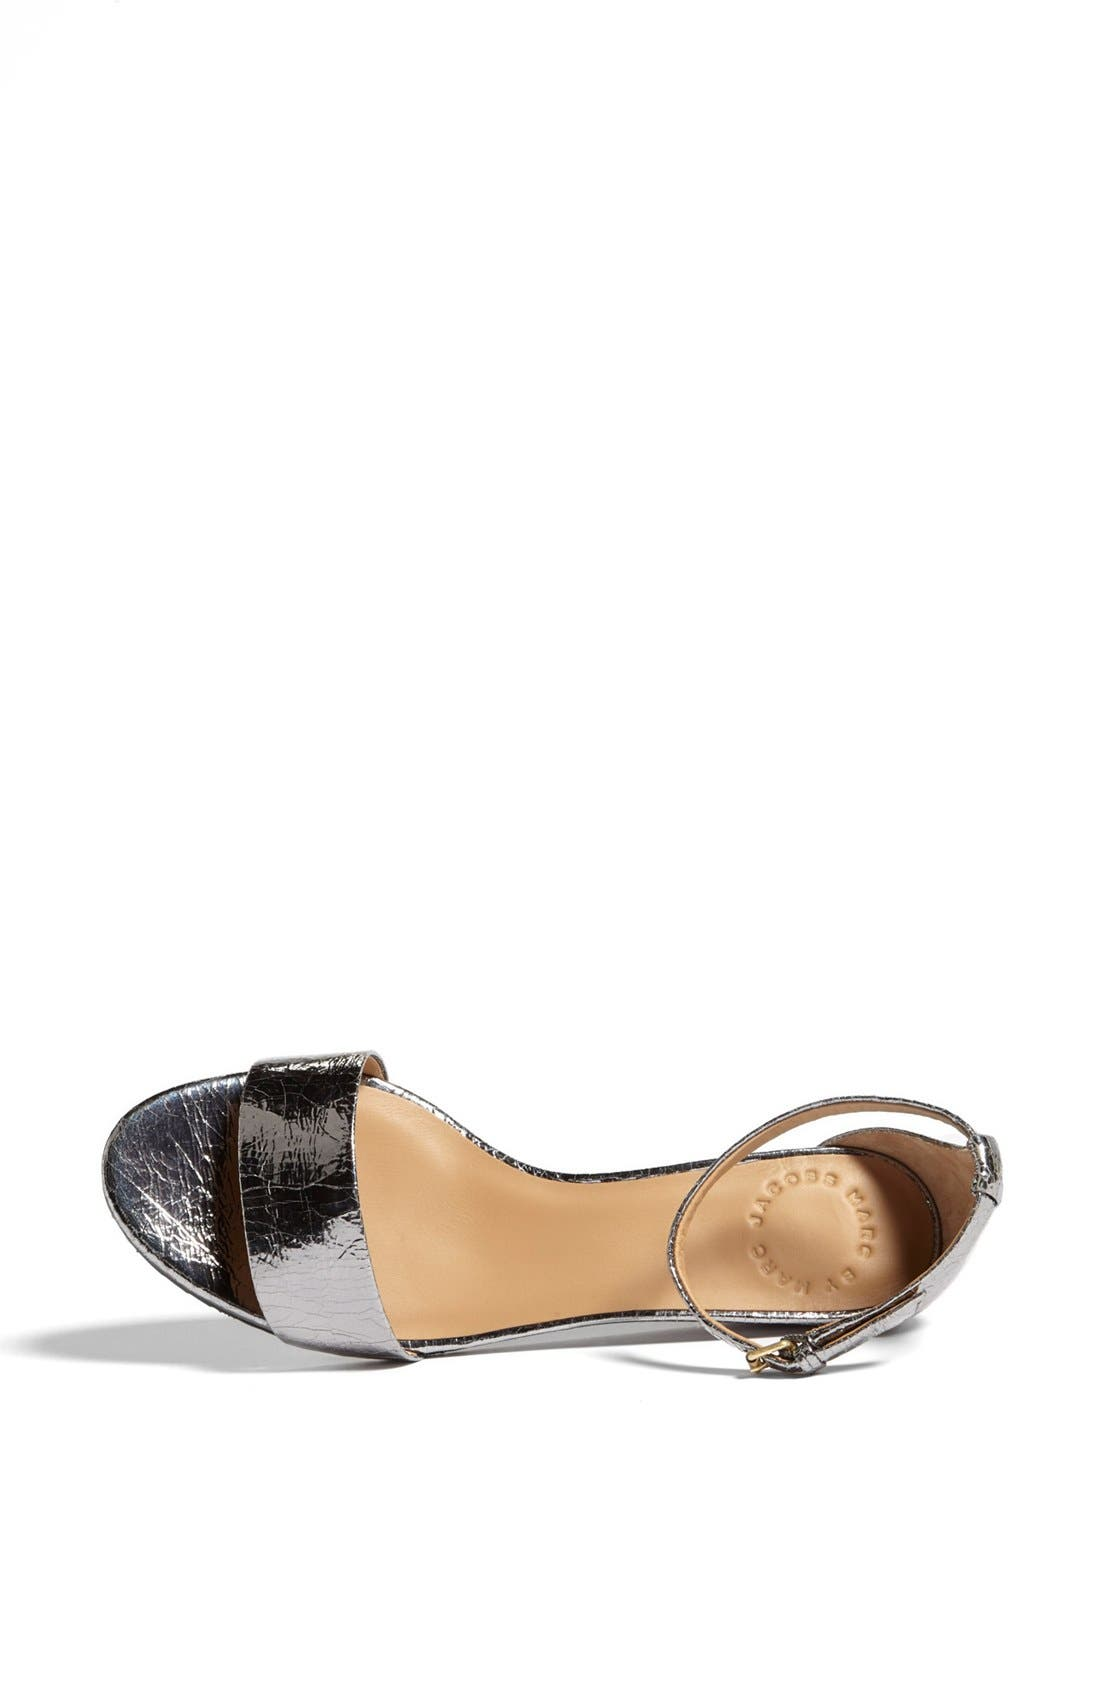 Alternate Image 3  - MARC BY MARC JACOBS 'Simplicity' Wedge Sandal